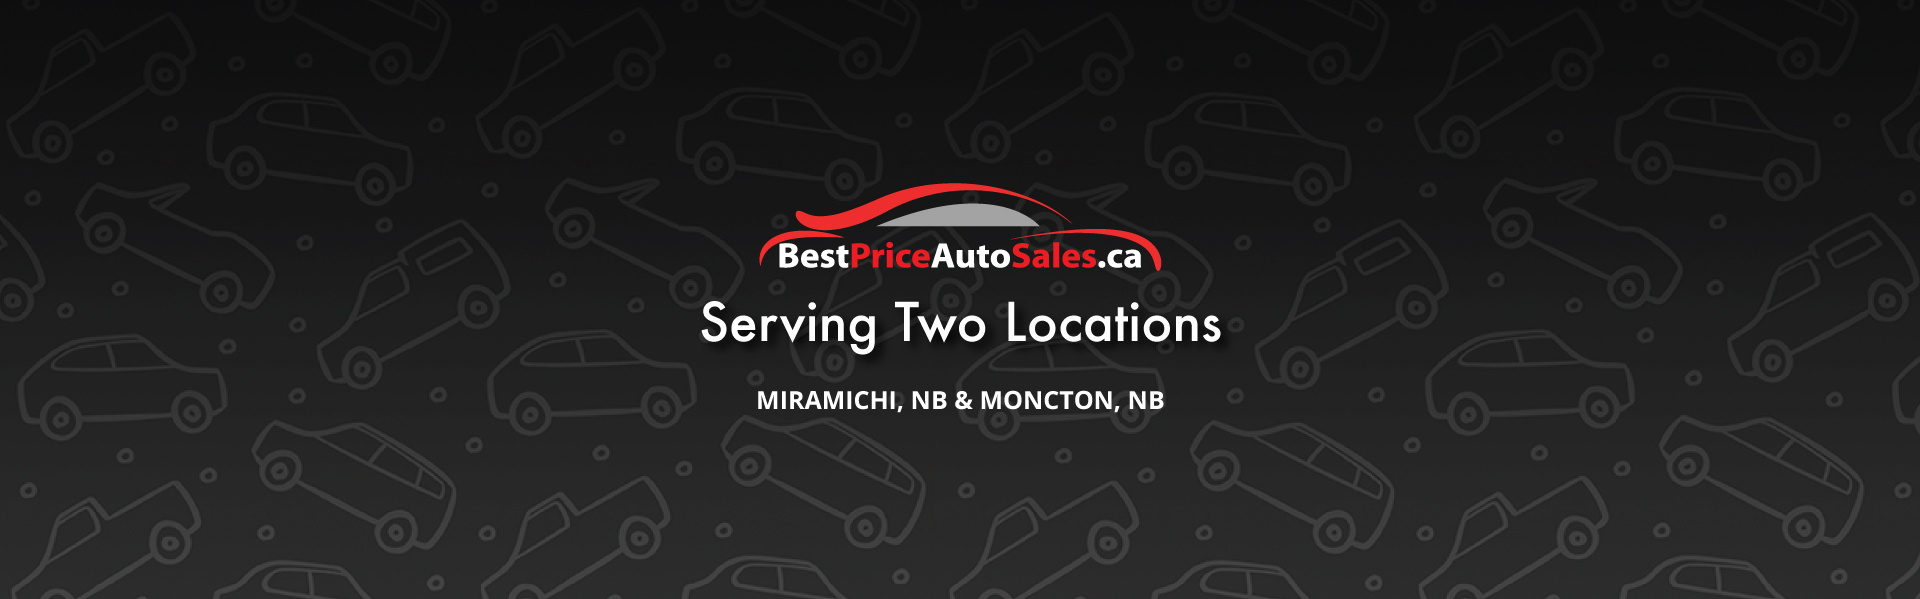 Best Price Auto Sales: Serving Two Locations